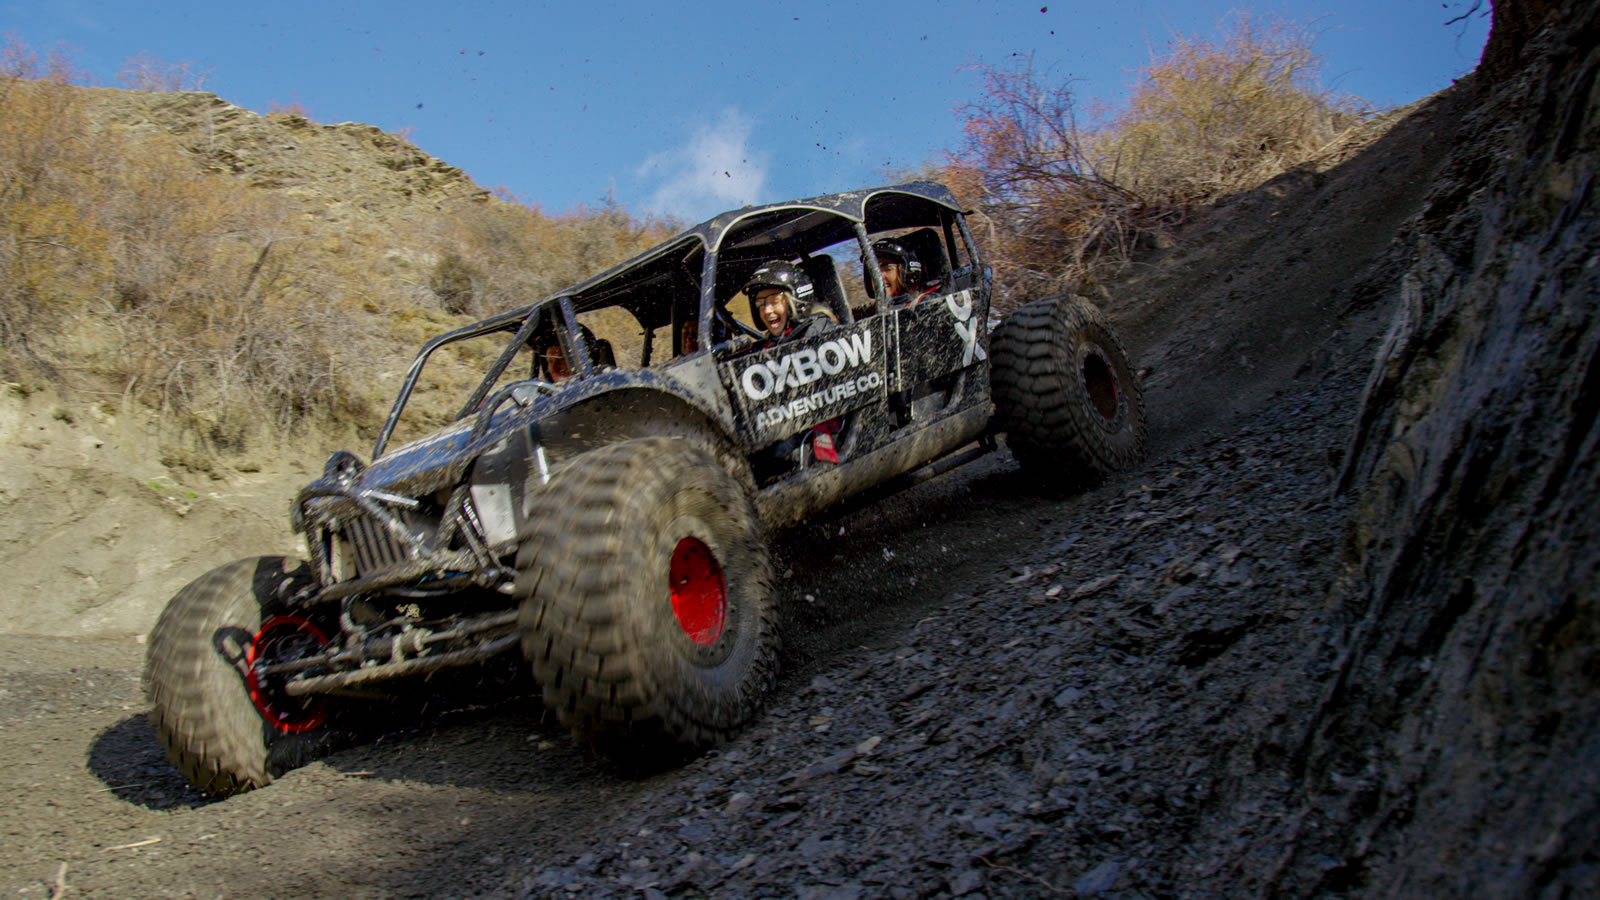 Off-road activity in action